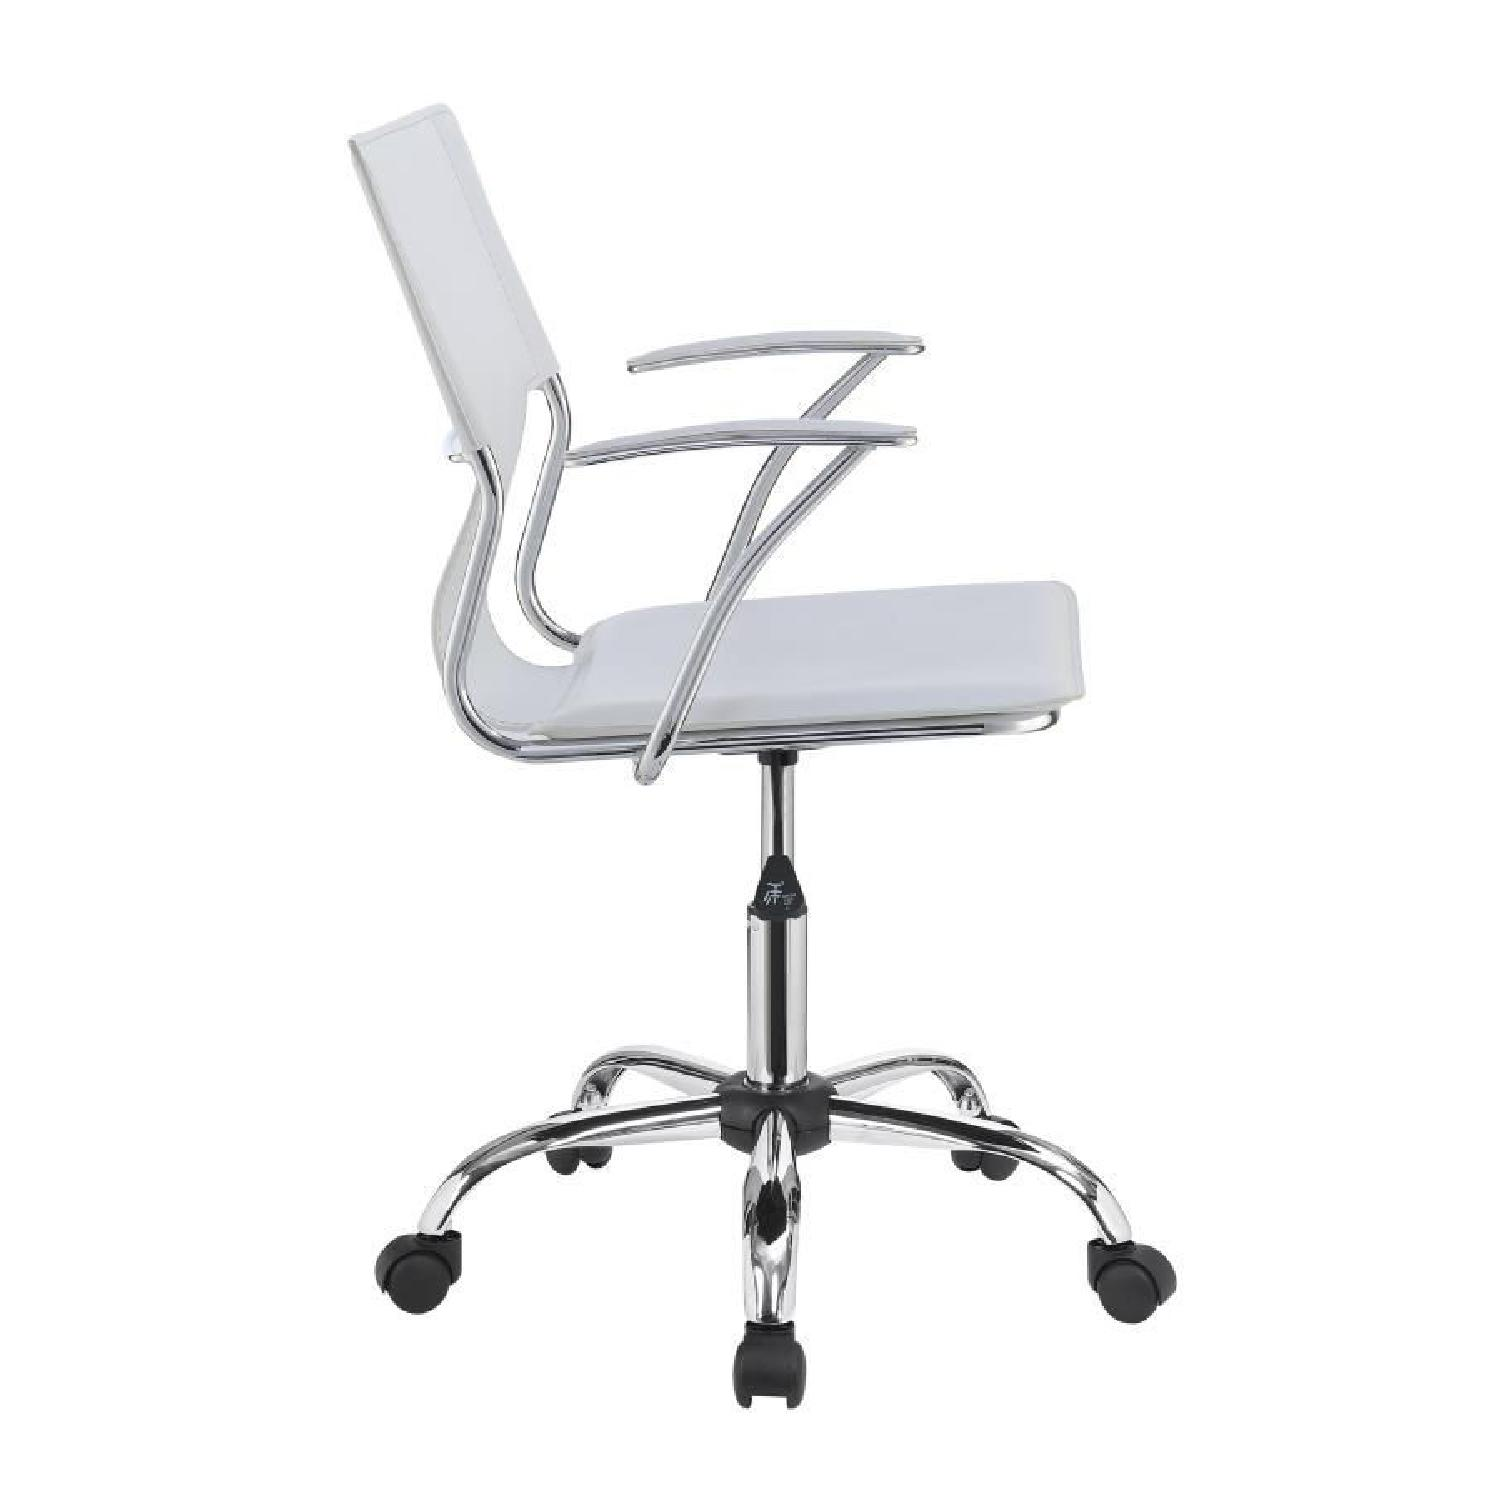 Modern Office Chair in White Leatherette w/ Chrome Legs - image-1